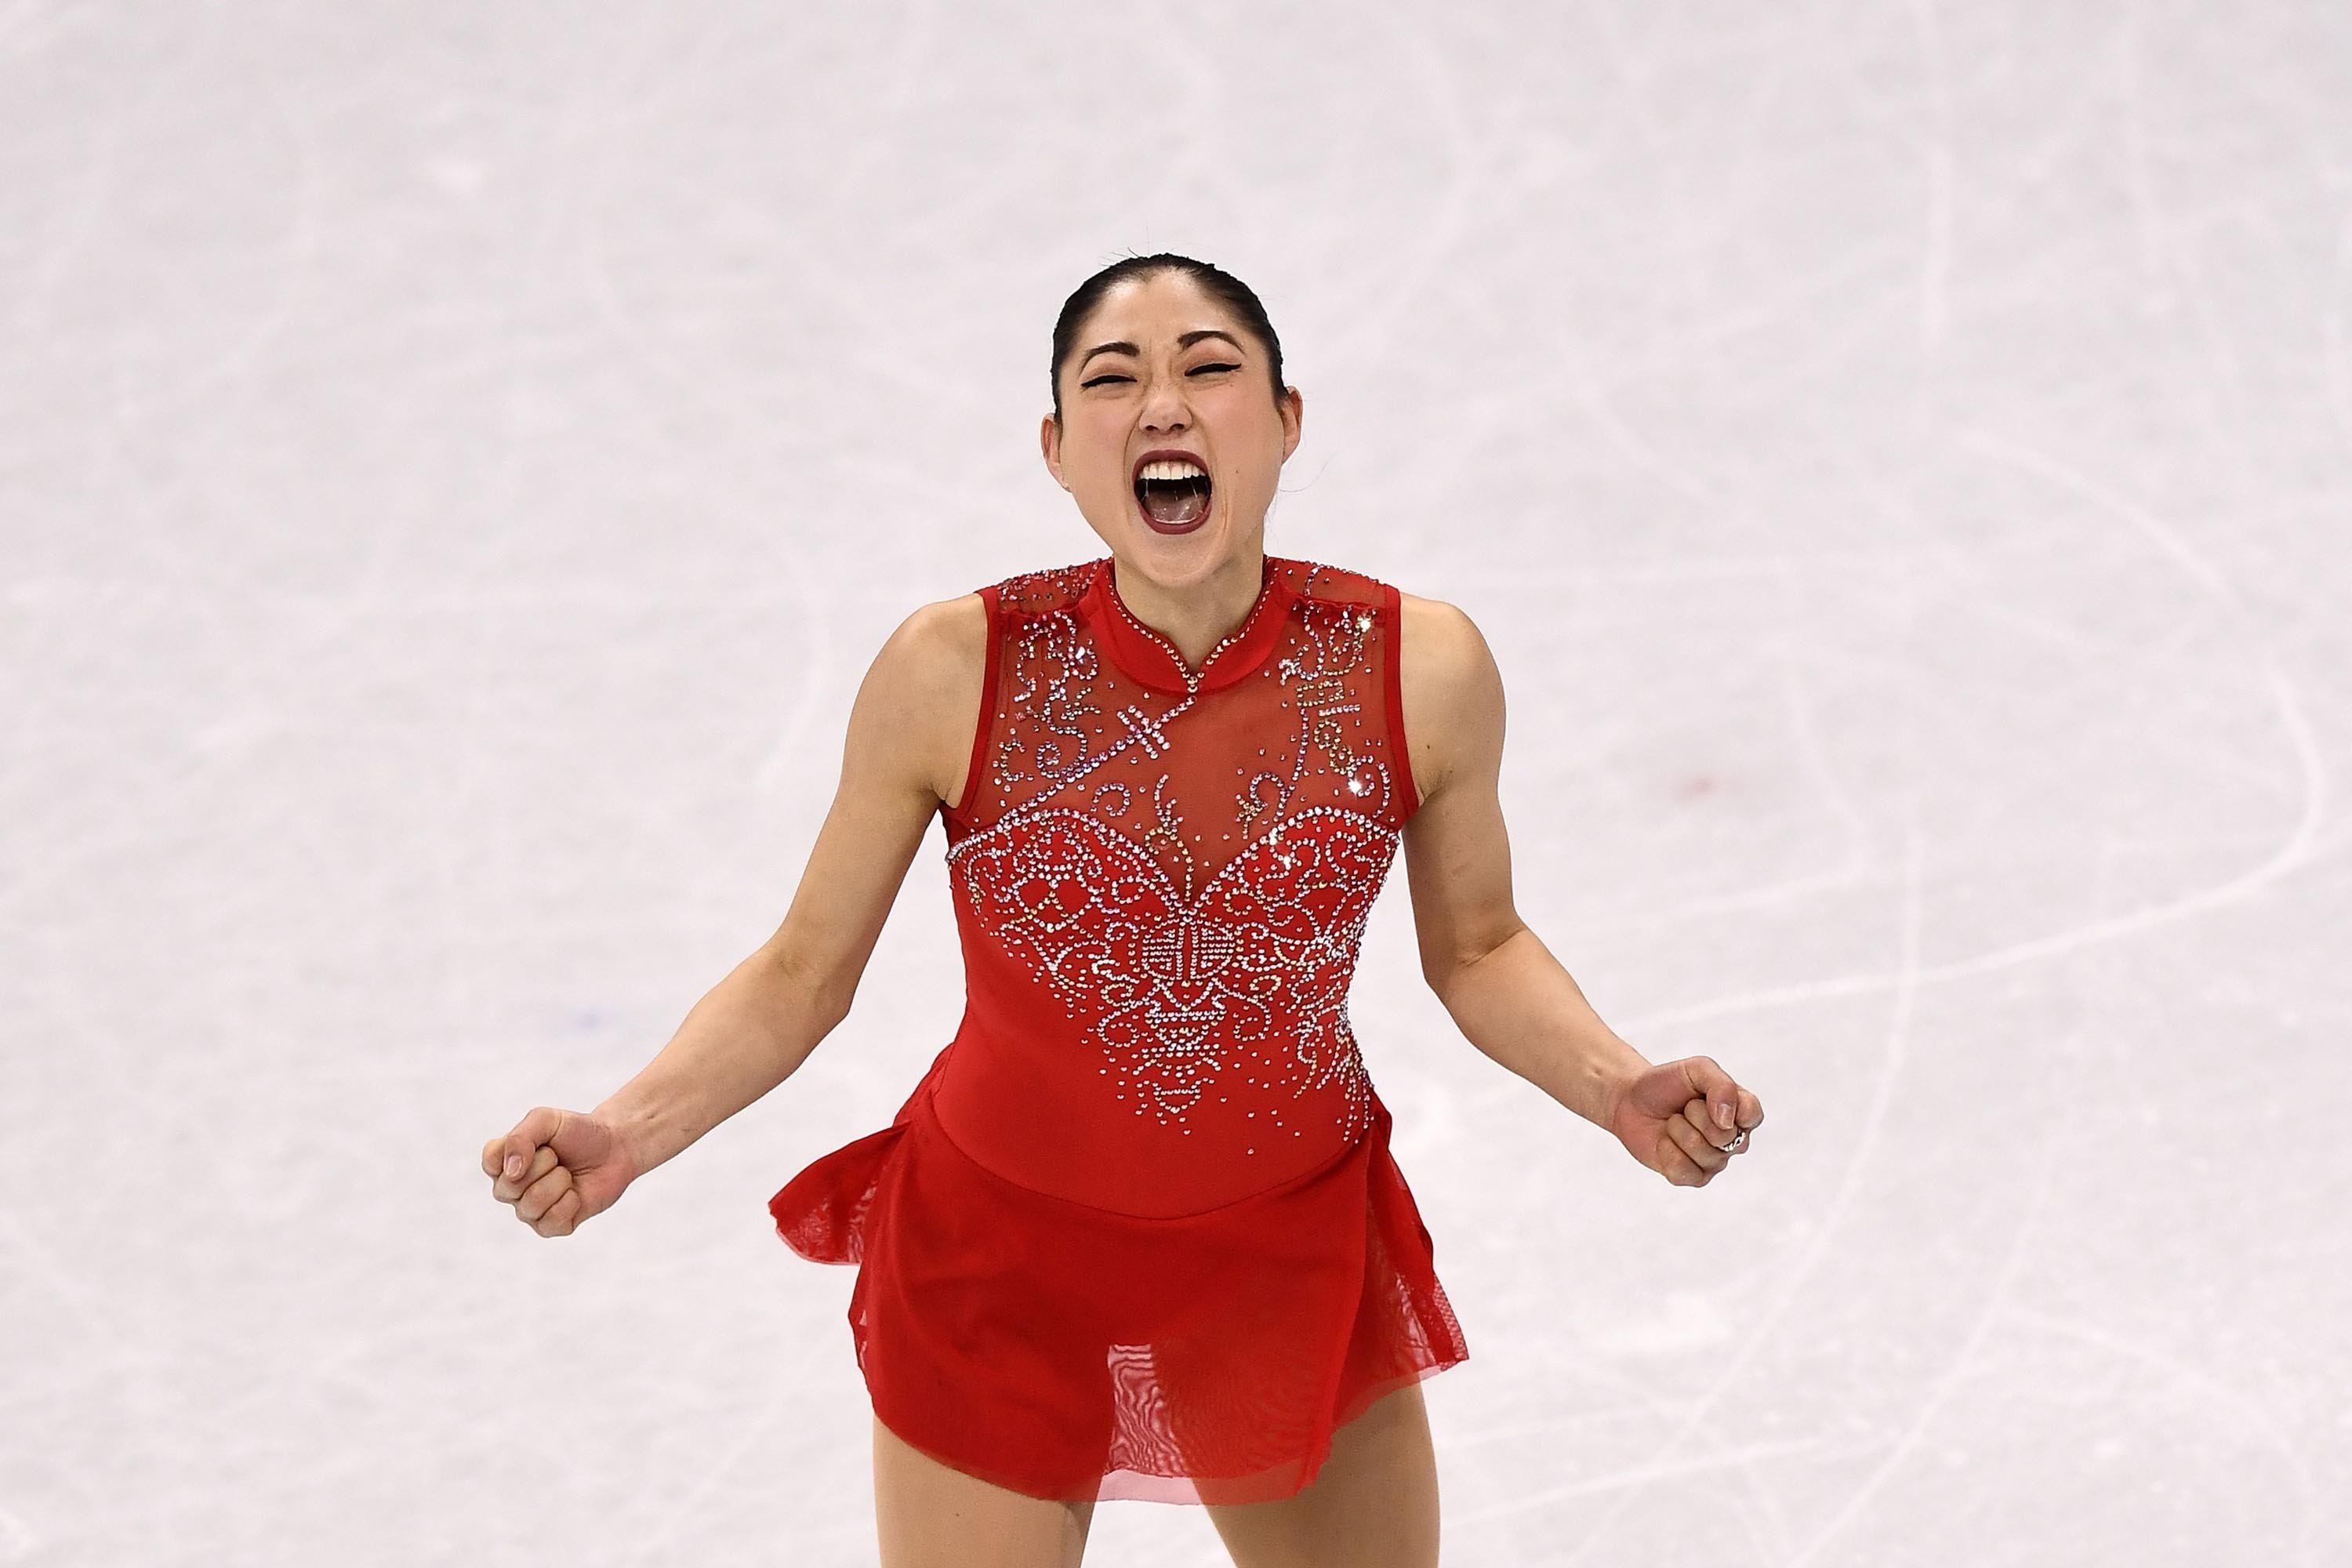 Olympics 2018: What You Missed This Weekend in Figure Skating